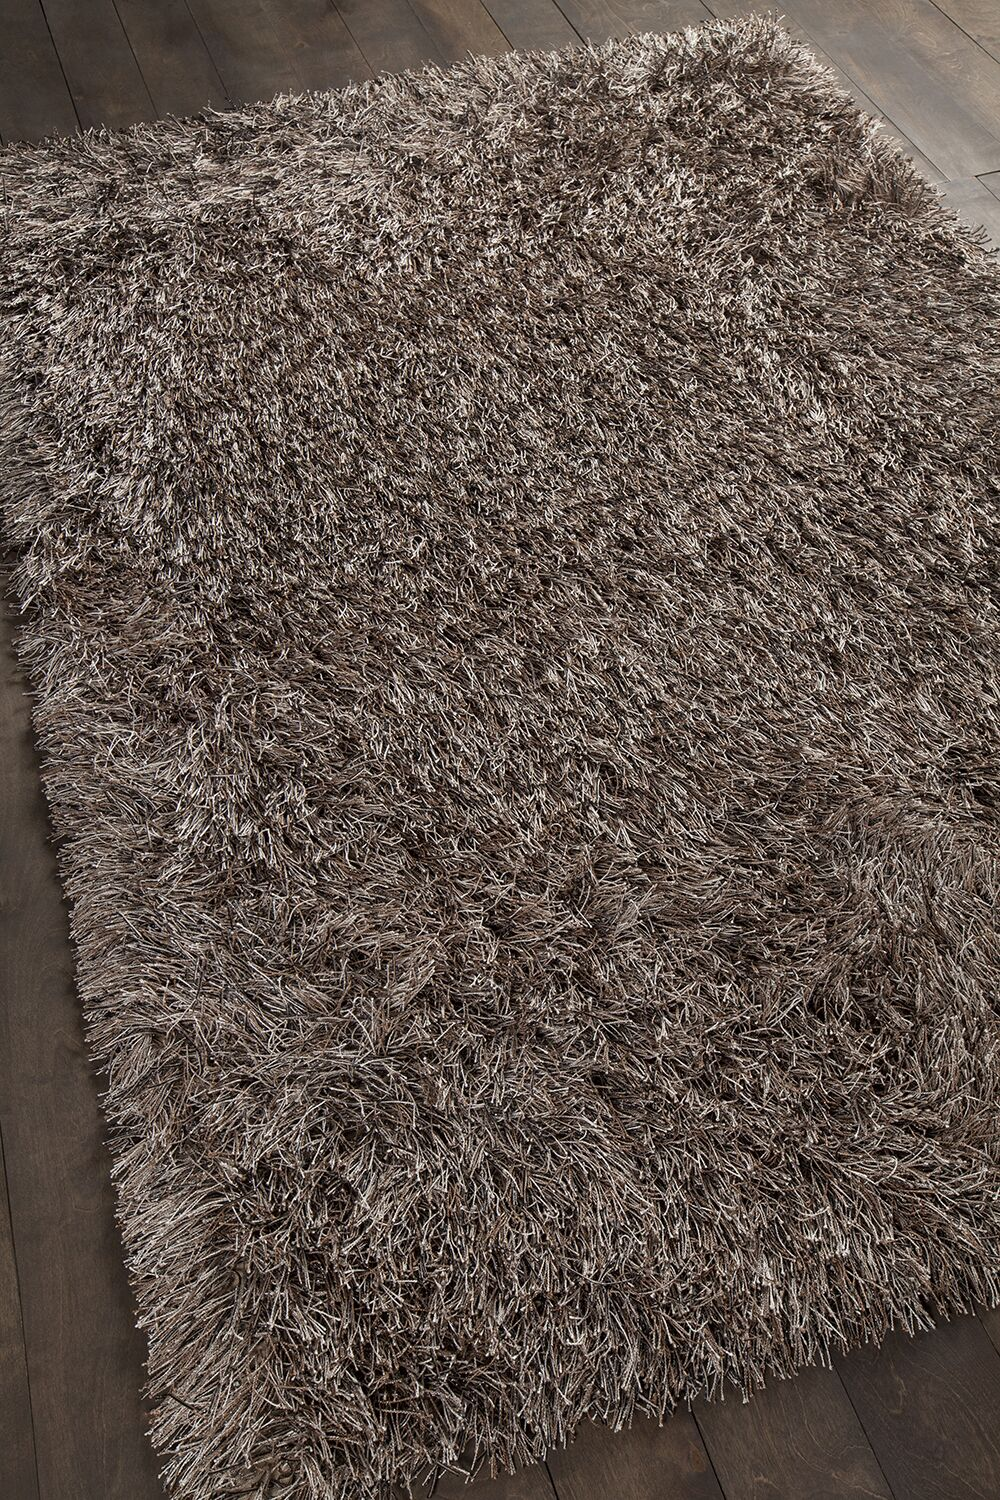 Boomer Hand-Woven Brown Area Rug Rug Size: 9' x 13'